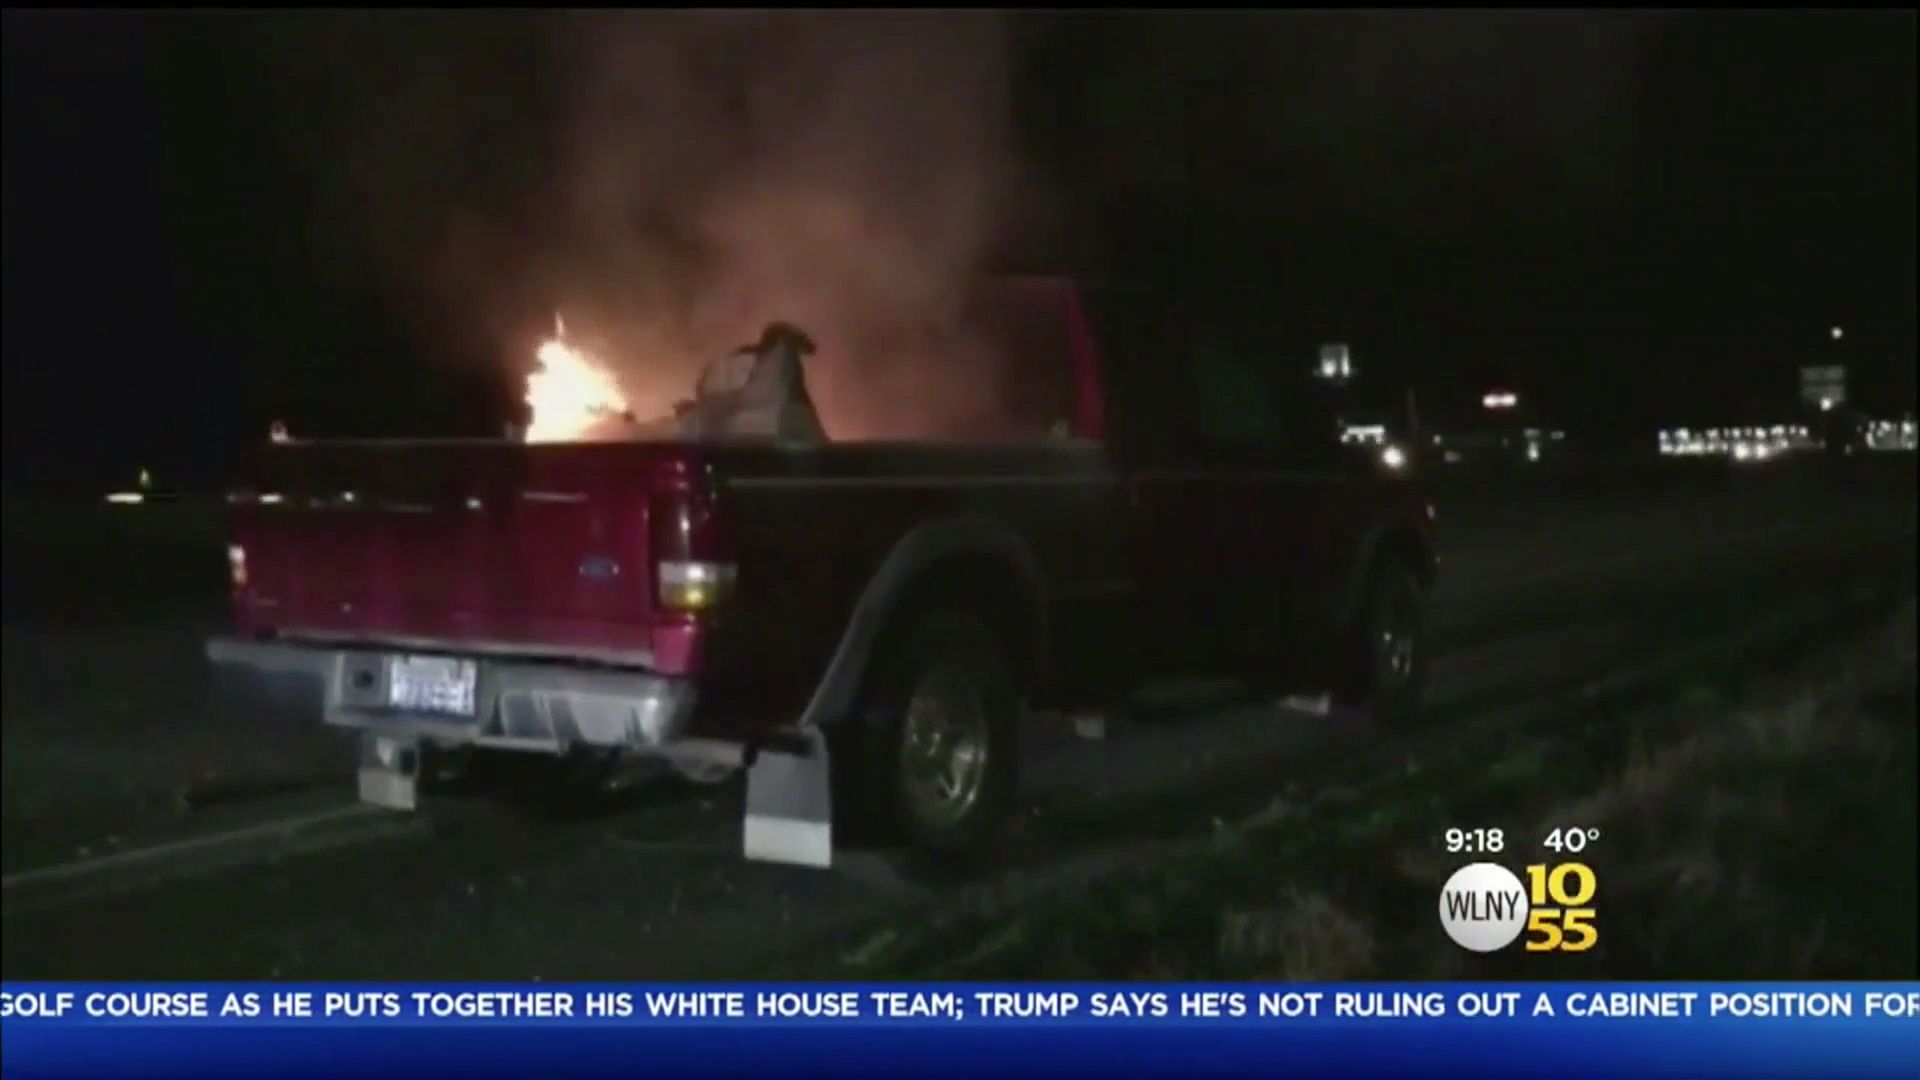 A Washington couple says a toy Tonka truck purchased for their grandson burst into flames inside their pickup truck